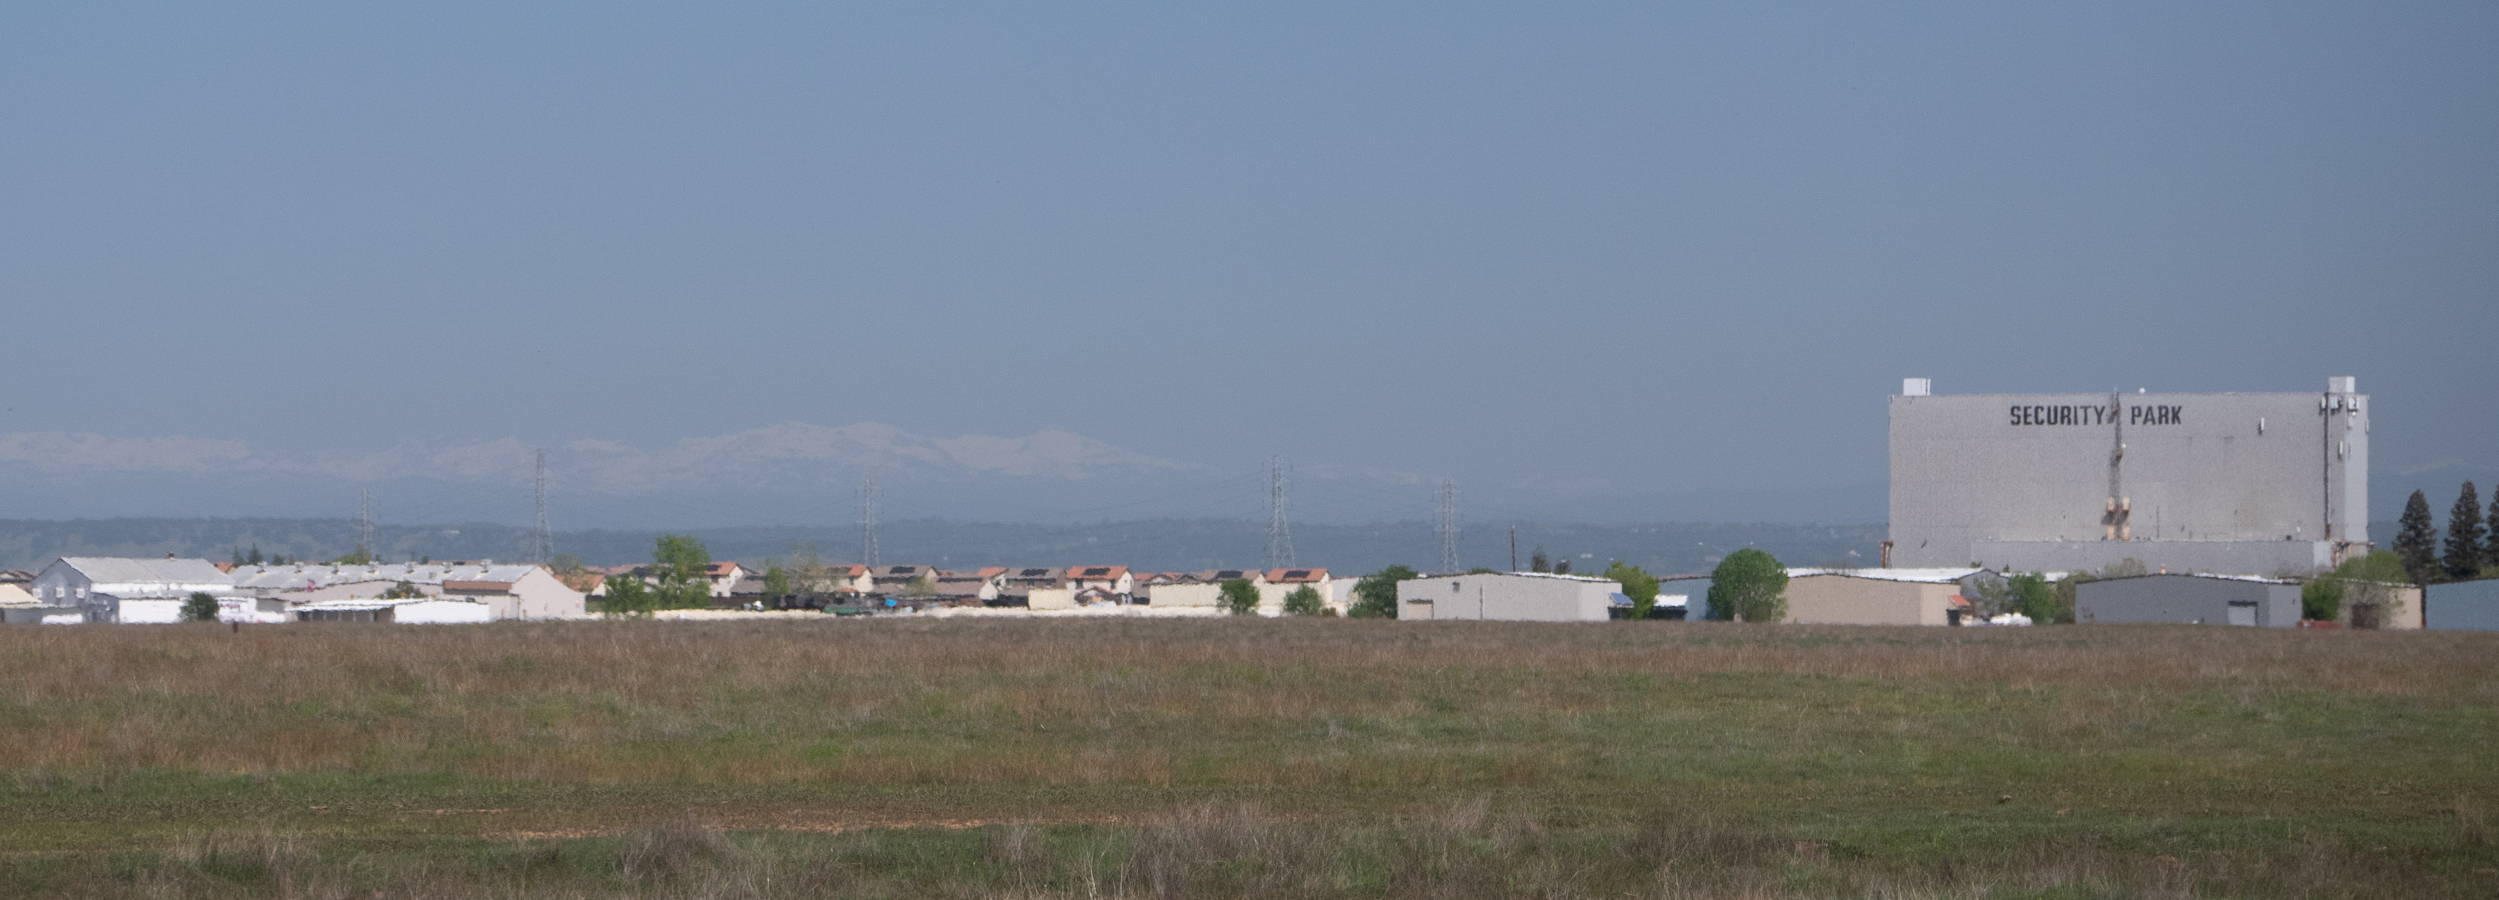 Security Park and the distant Sierra Nevada.